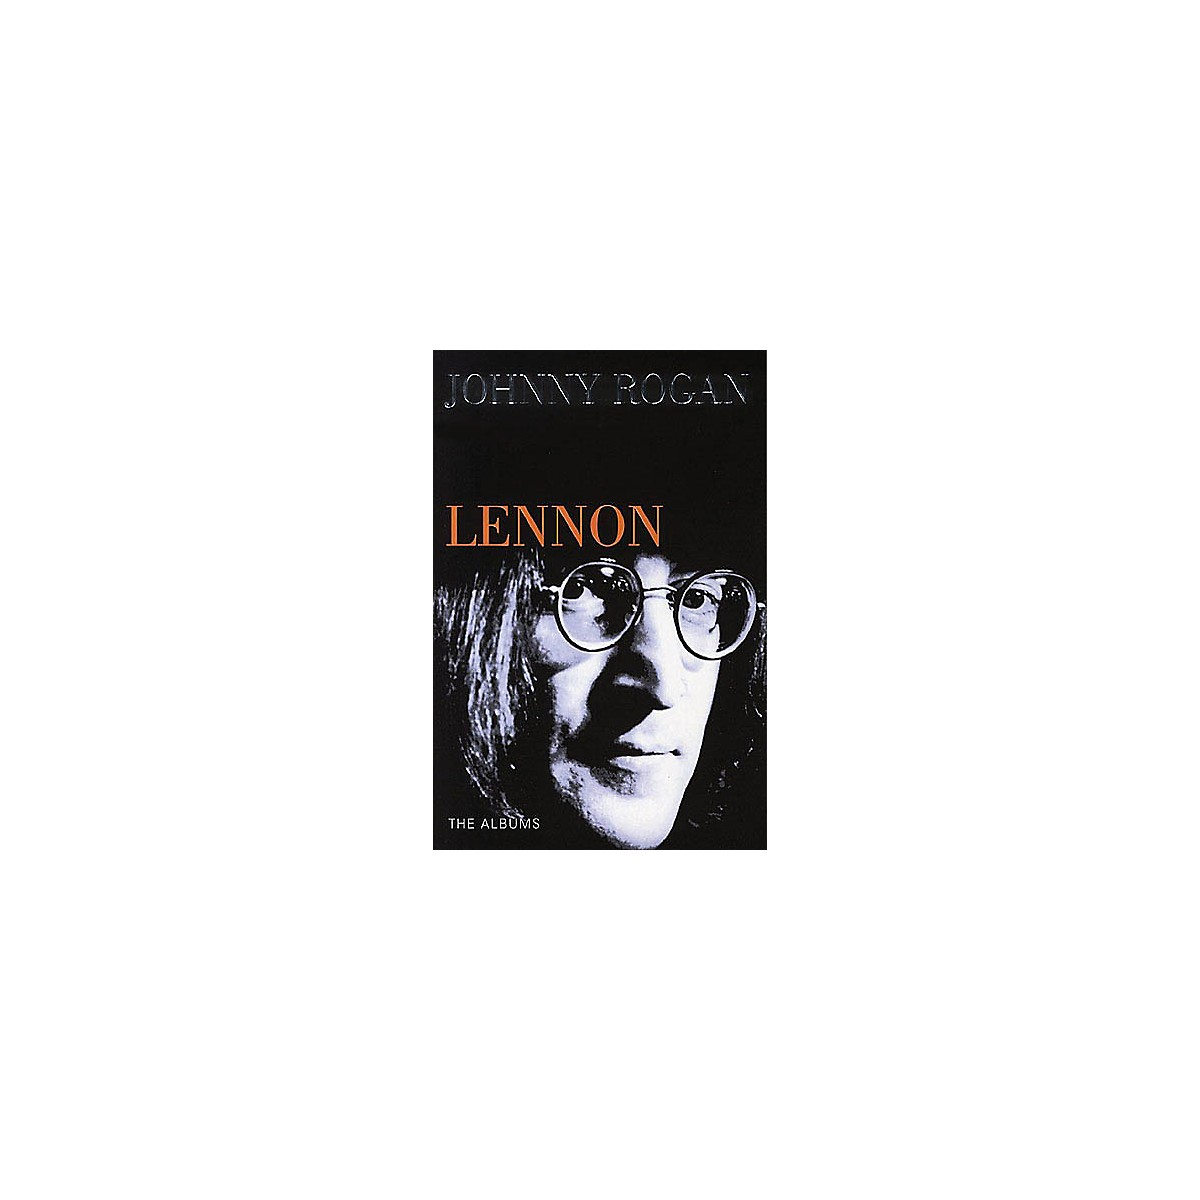 Omnibus Lennon (The Albums) Omnibus Press Series Softcover Written by Johnny Rogan